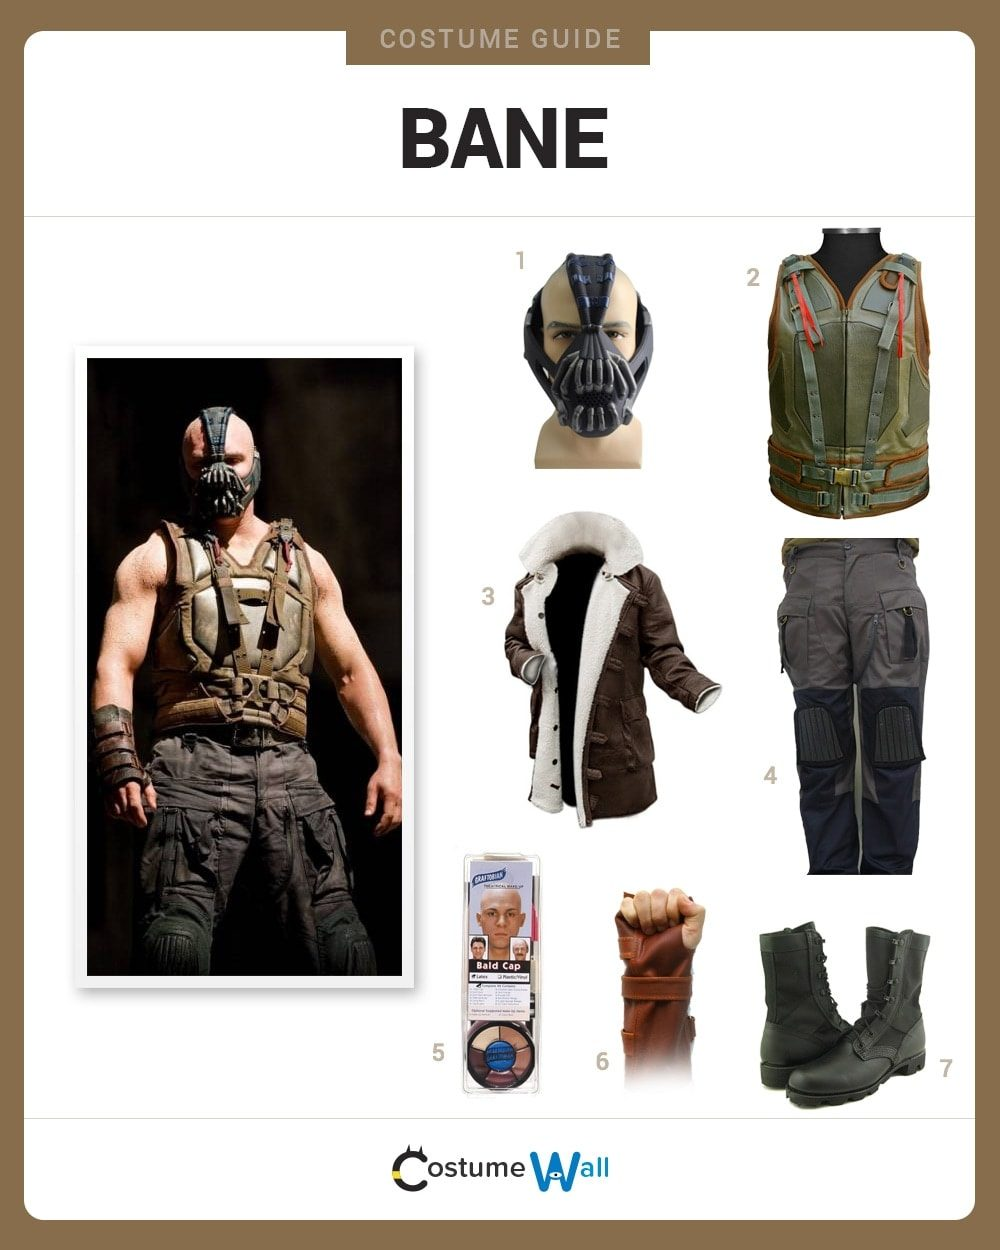 Costume Breakdown & Dress Like Bane Costume | Halloween and Cosplay Guides